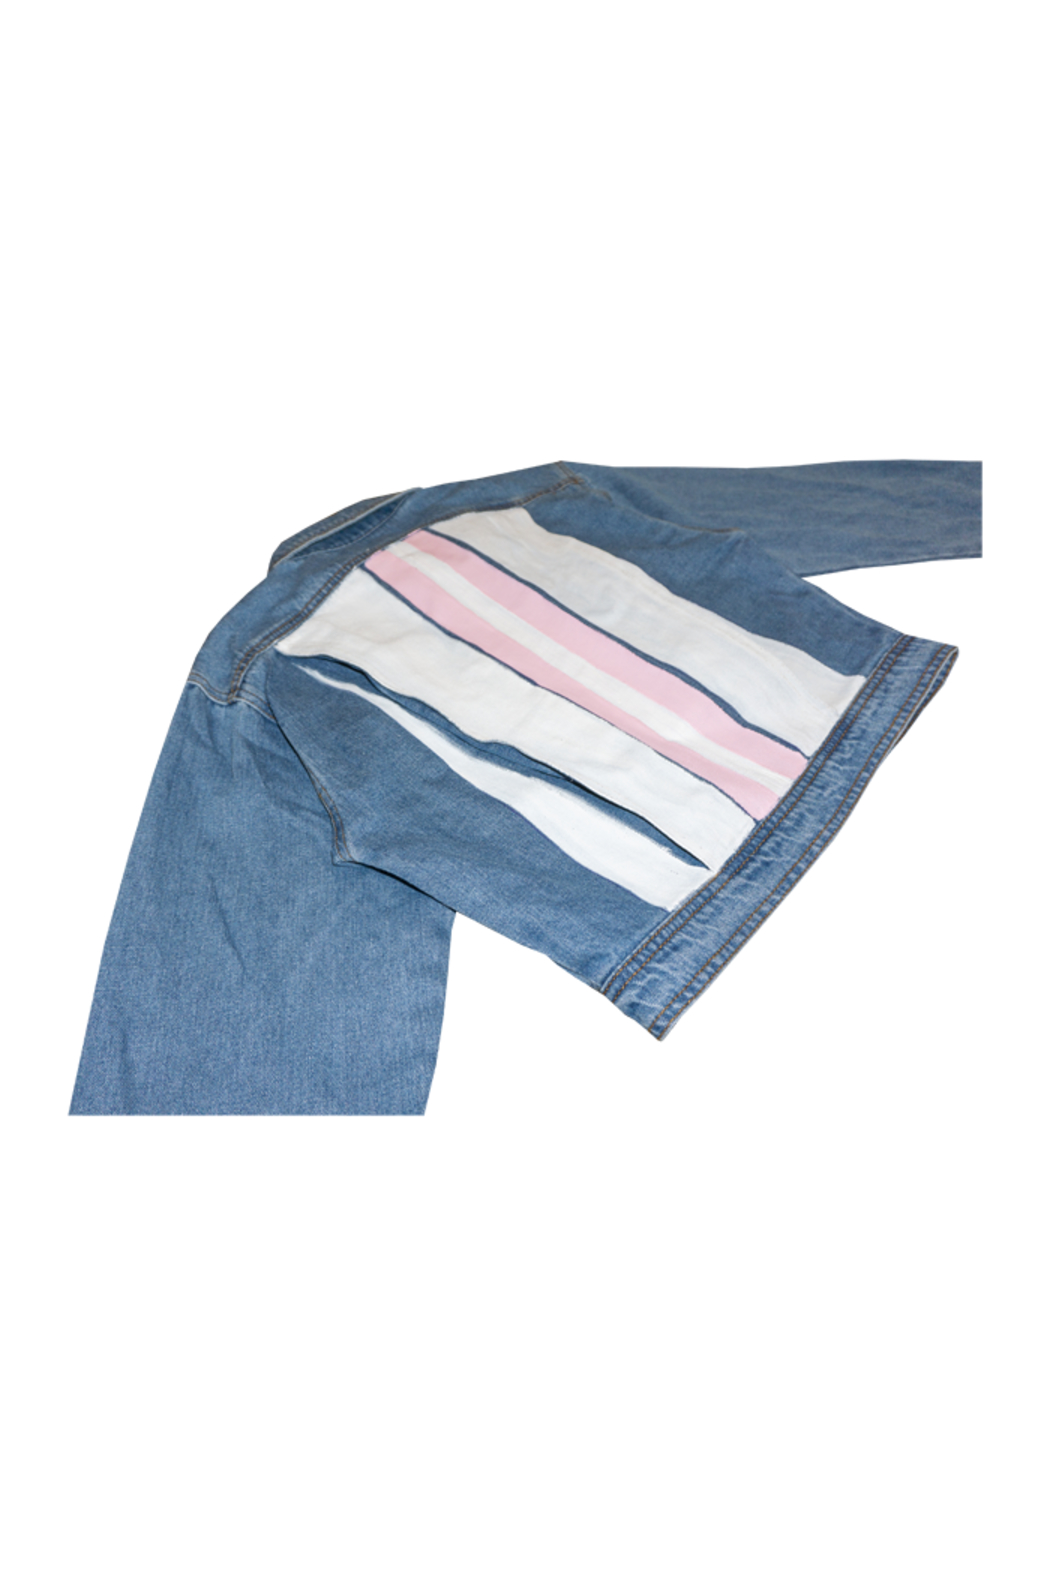 Avery Rowan Art 2 Pink Srtipes on White Back Blue Denim Crop Jacket - Side Cropped Image